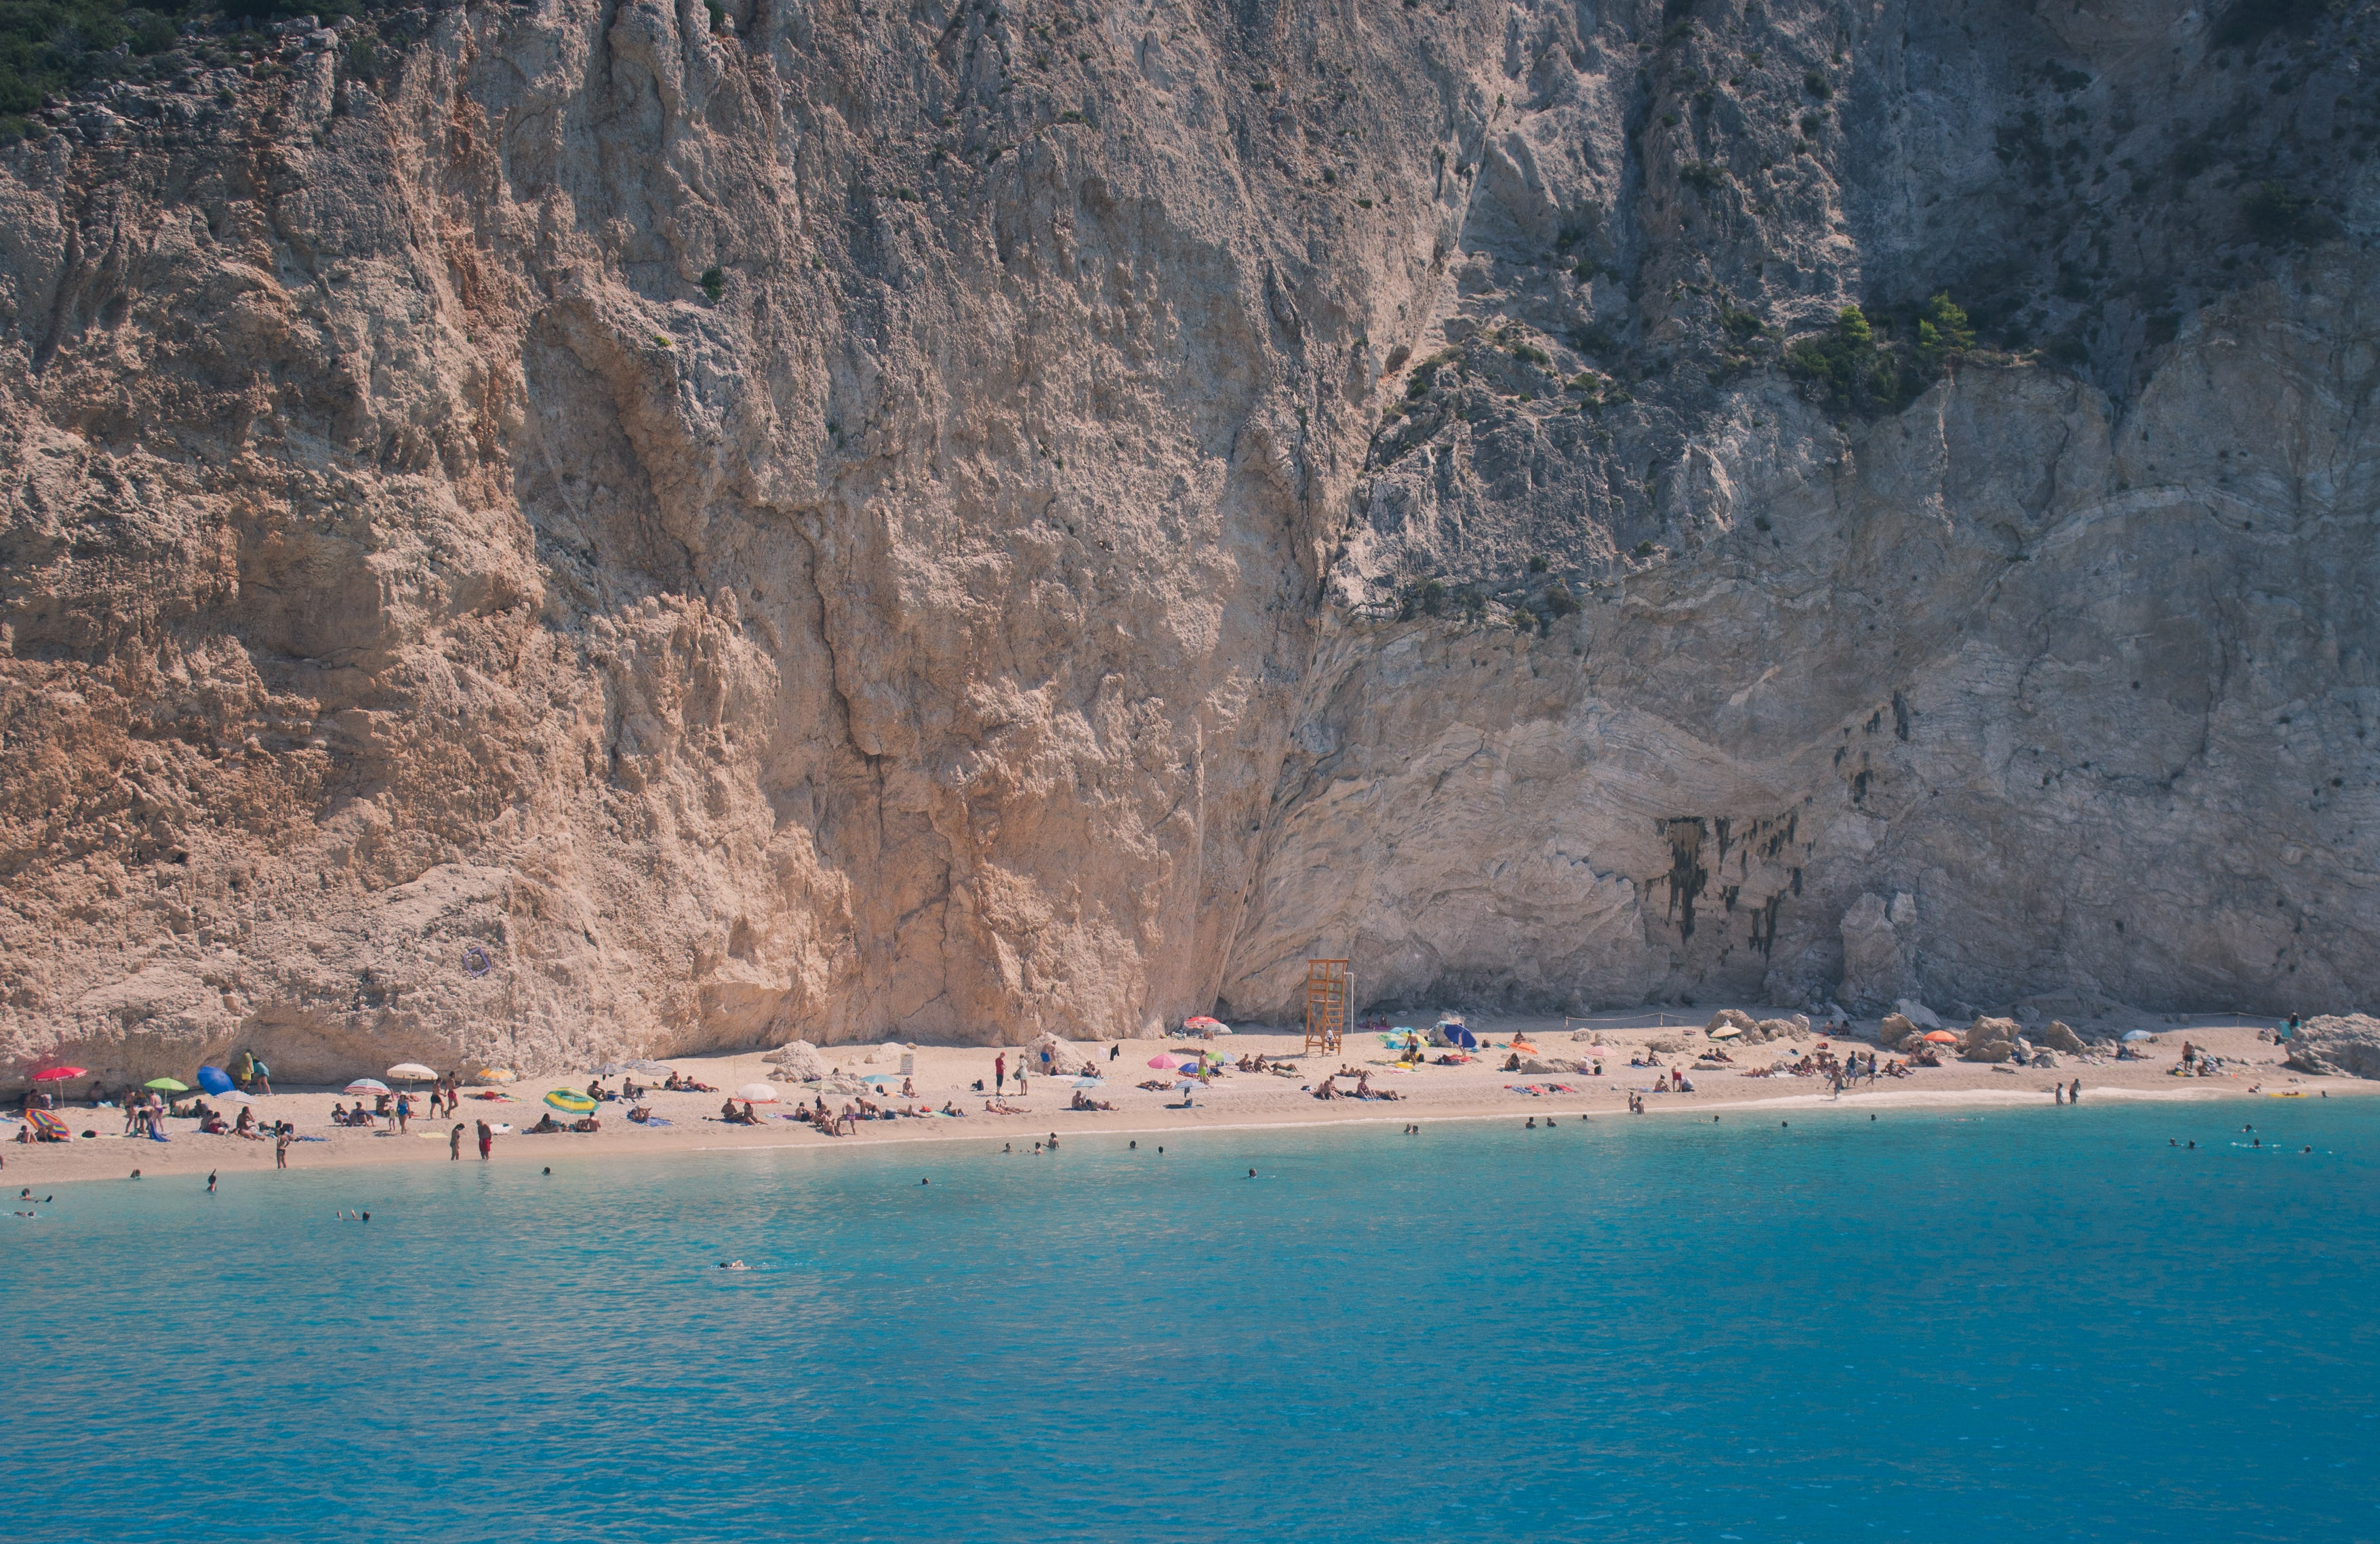 Tourists vacationing on a golden beach with a steep rock face at the back